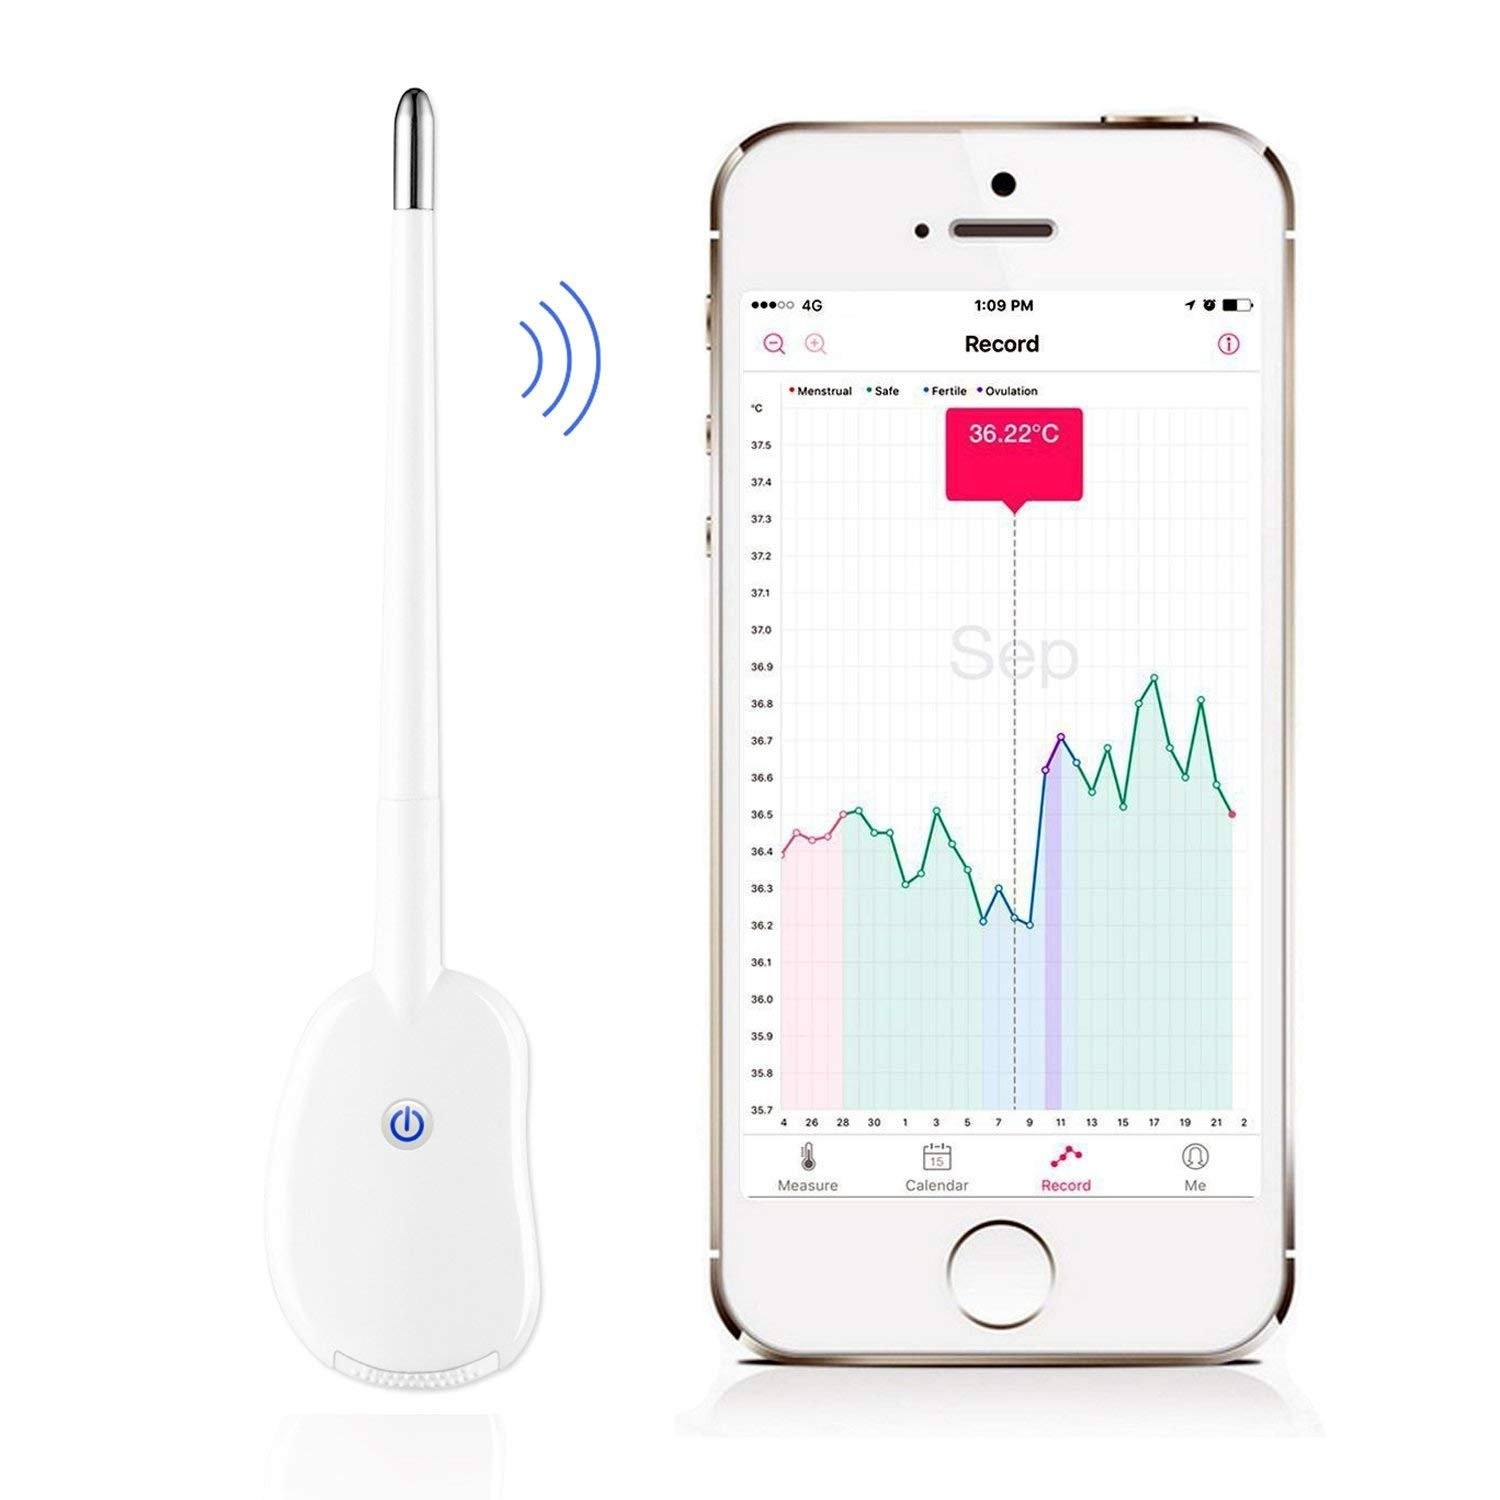 Smart Period Tracker Fertility Monitor, Basal Body Temperature Thermometer (BBT) Accurate Ovulation Prediction, Bluetooth Oral Basal Thermometer for Apple and Android …